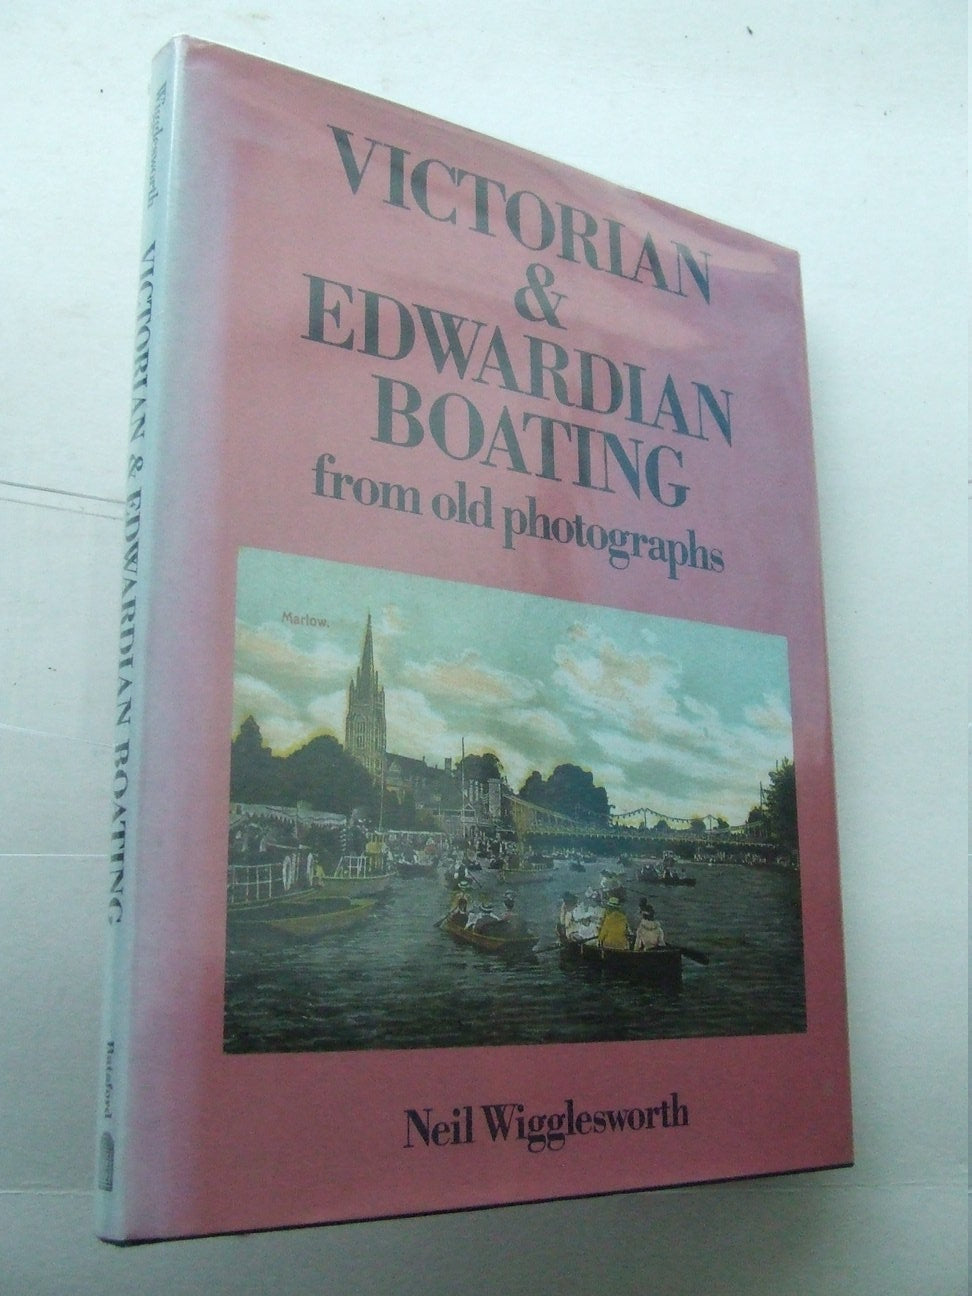 Victorian & Edwardian Boating from Old Photographs